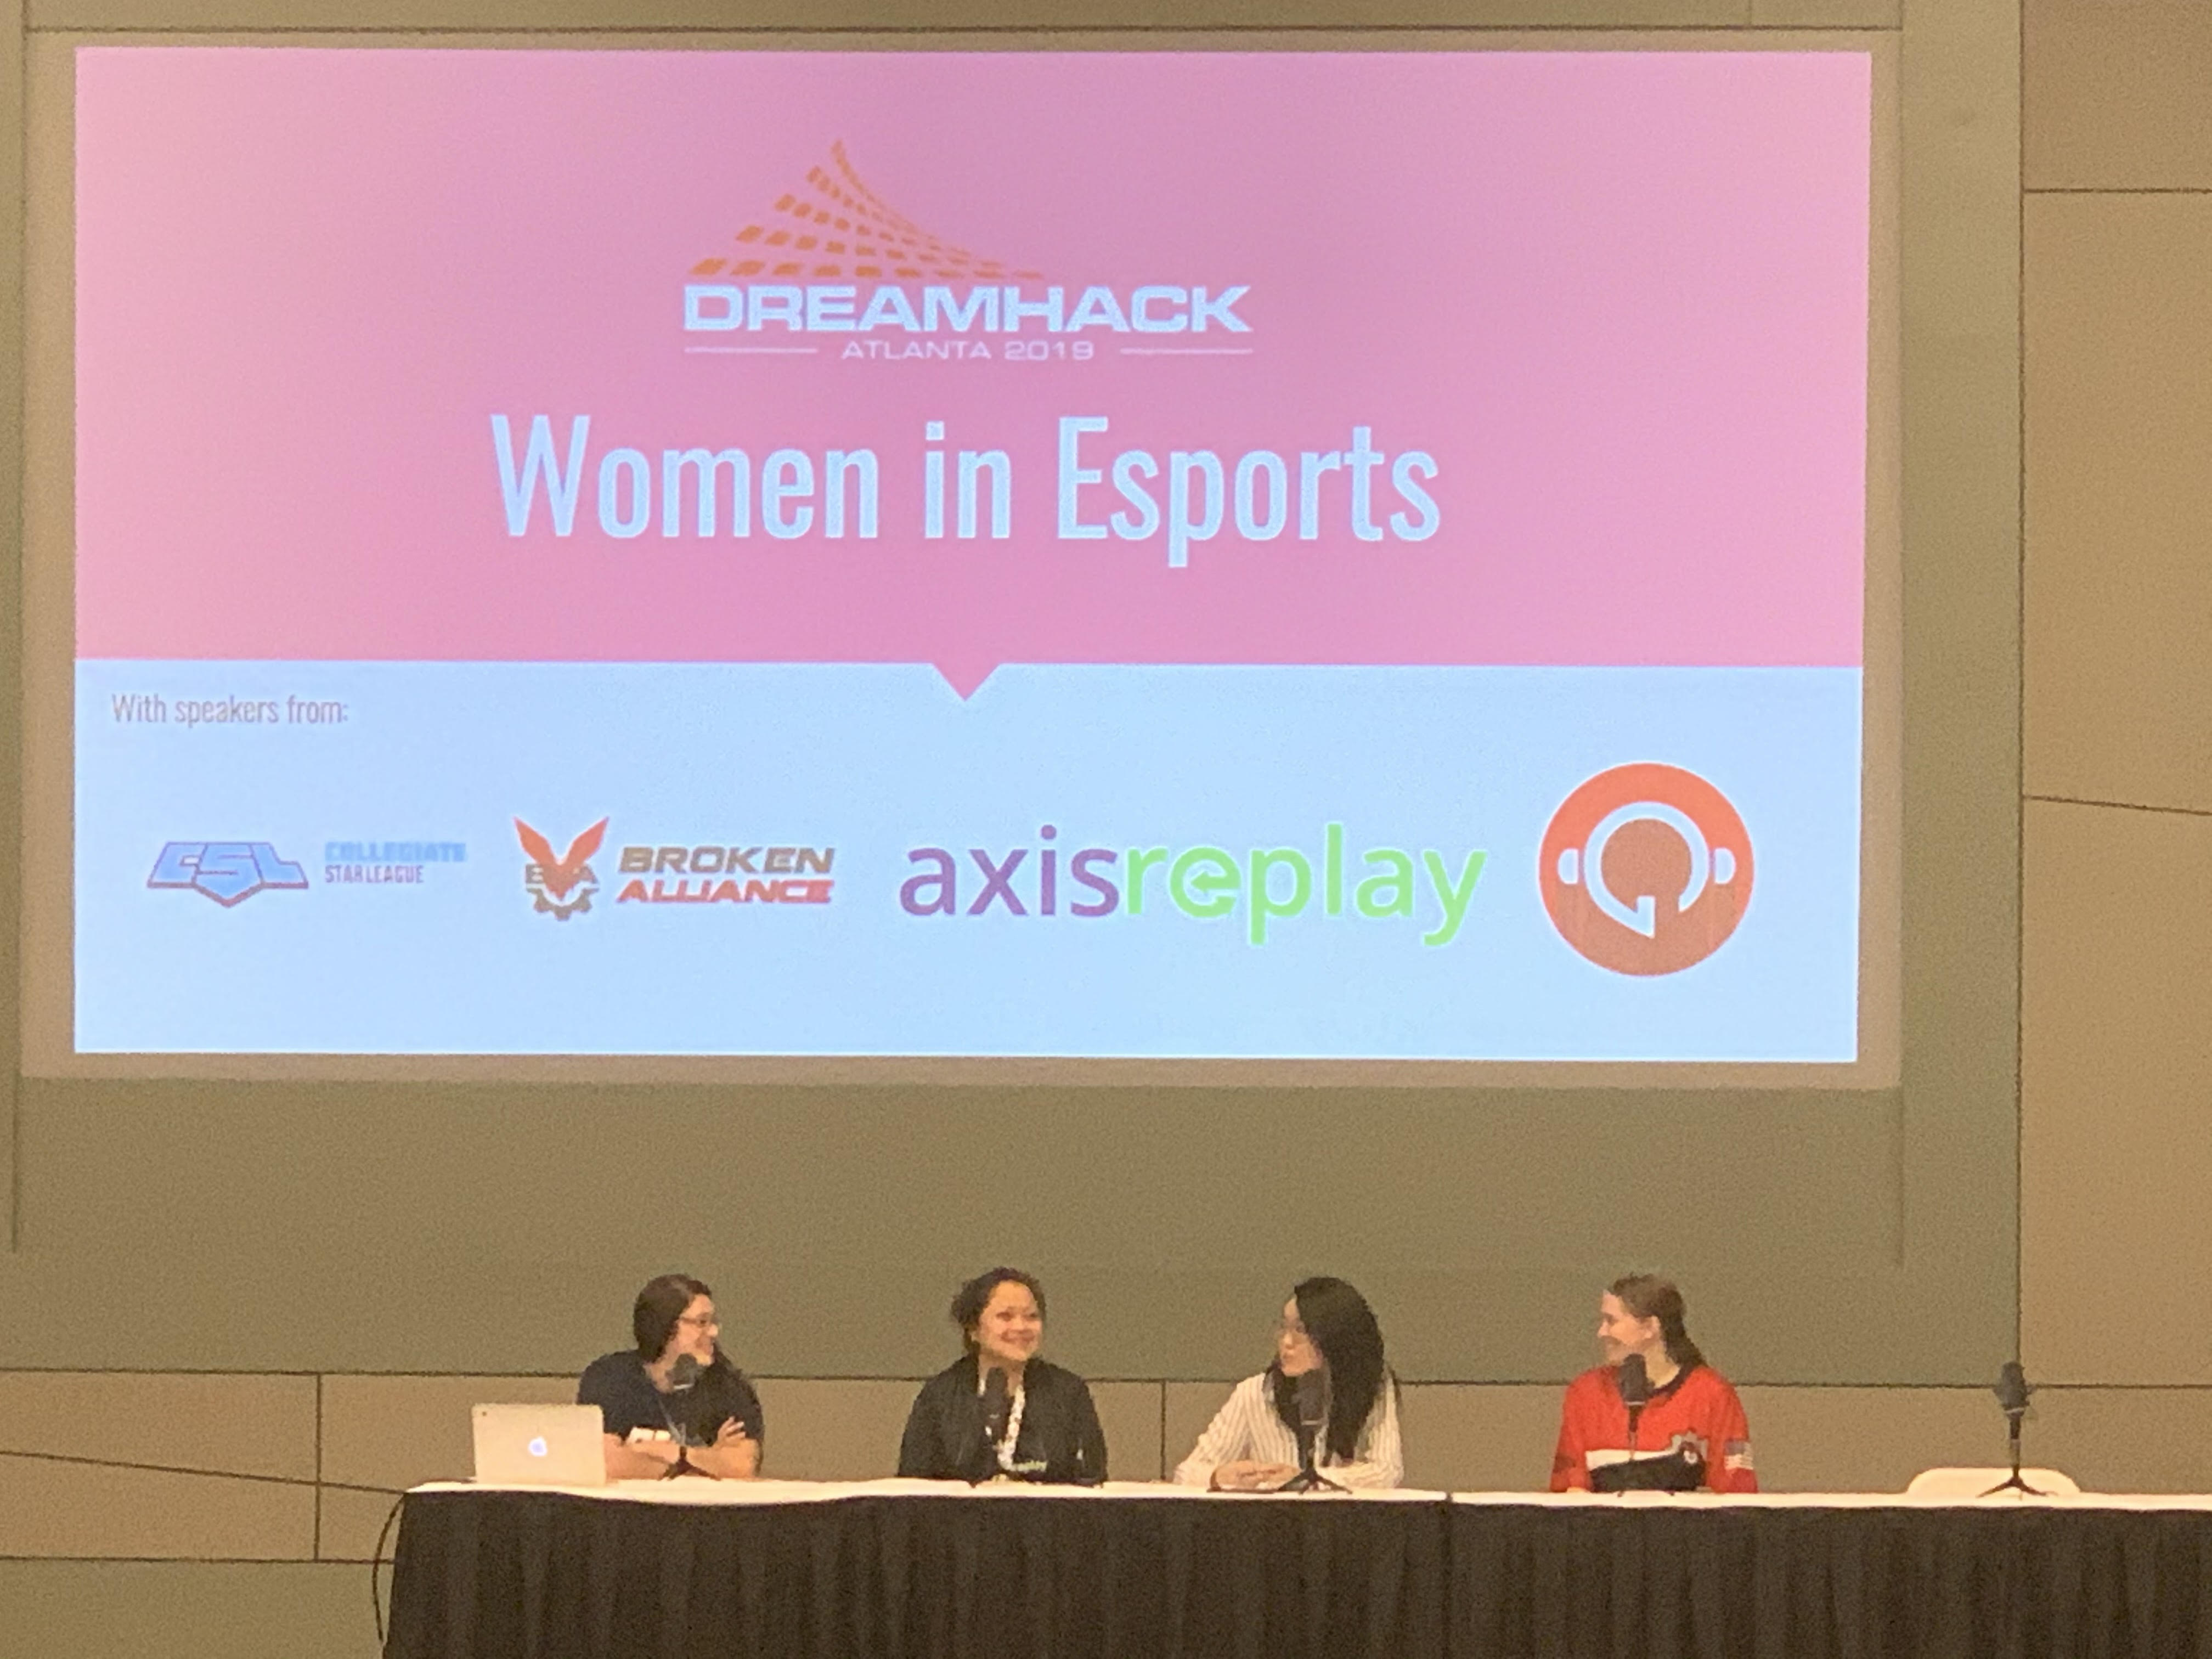 5 Ways to Get More Women Into Esports